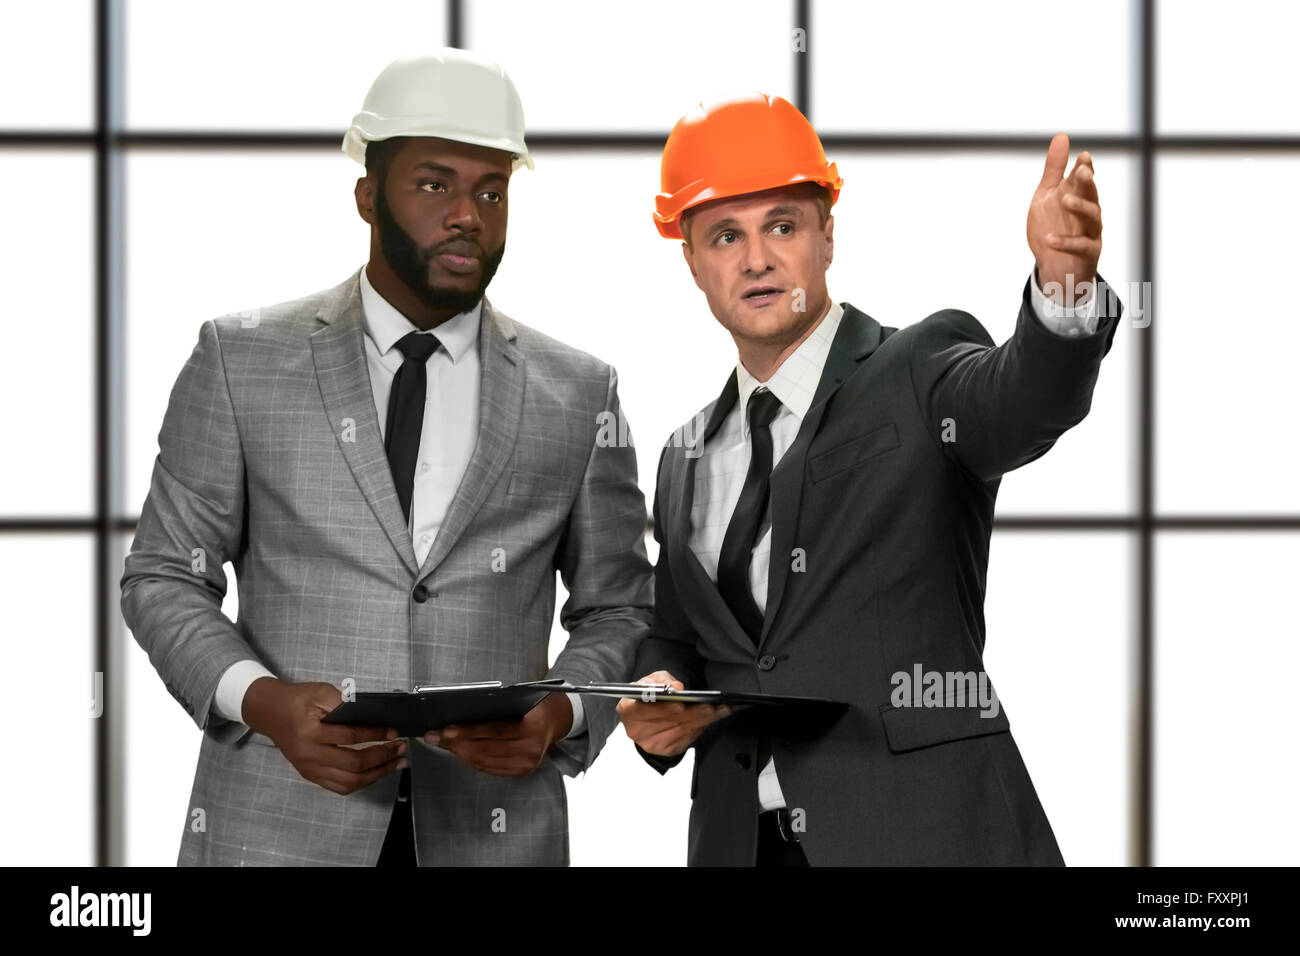 Businessmen wearing construction hats. - Stock Image